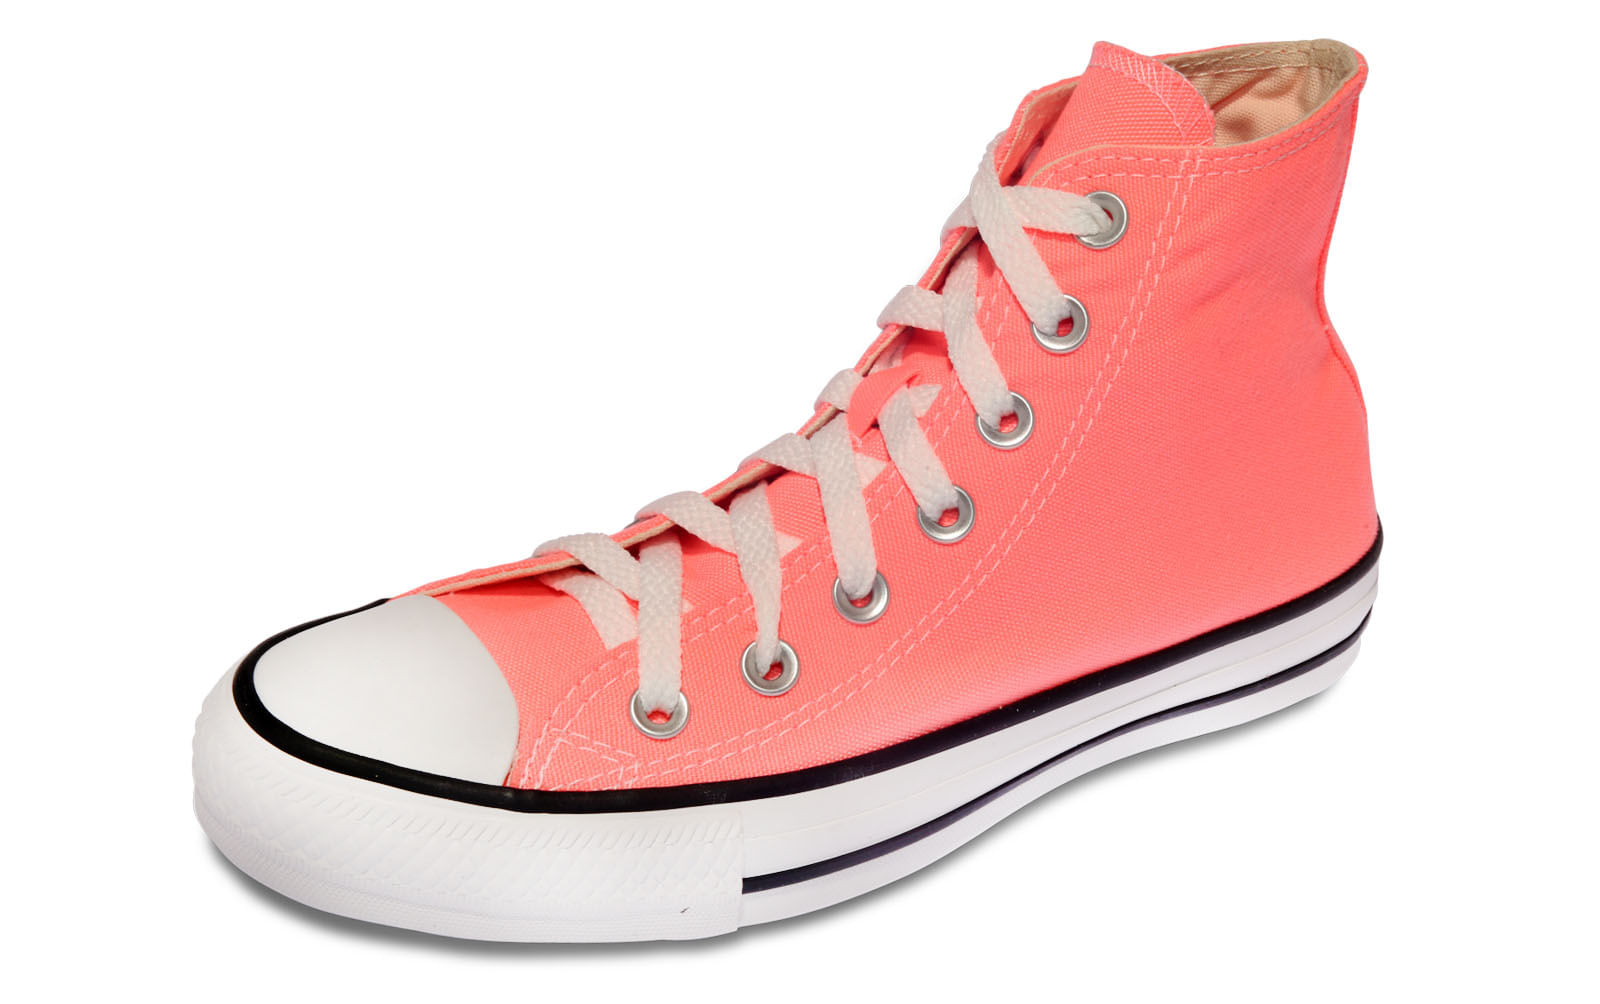 Tenis Chuck Taylor All Star Rosa Fluor - theboxproject 1f8ed150500cc